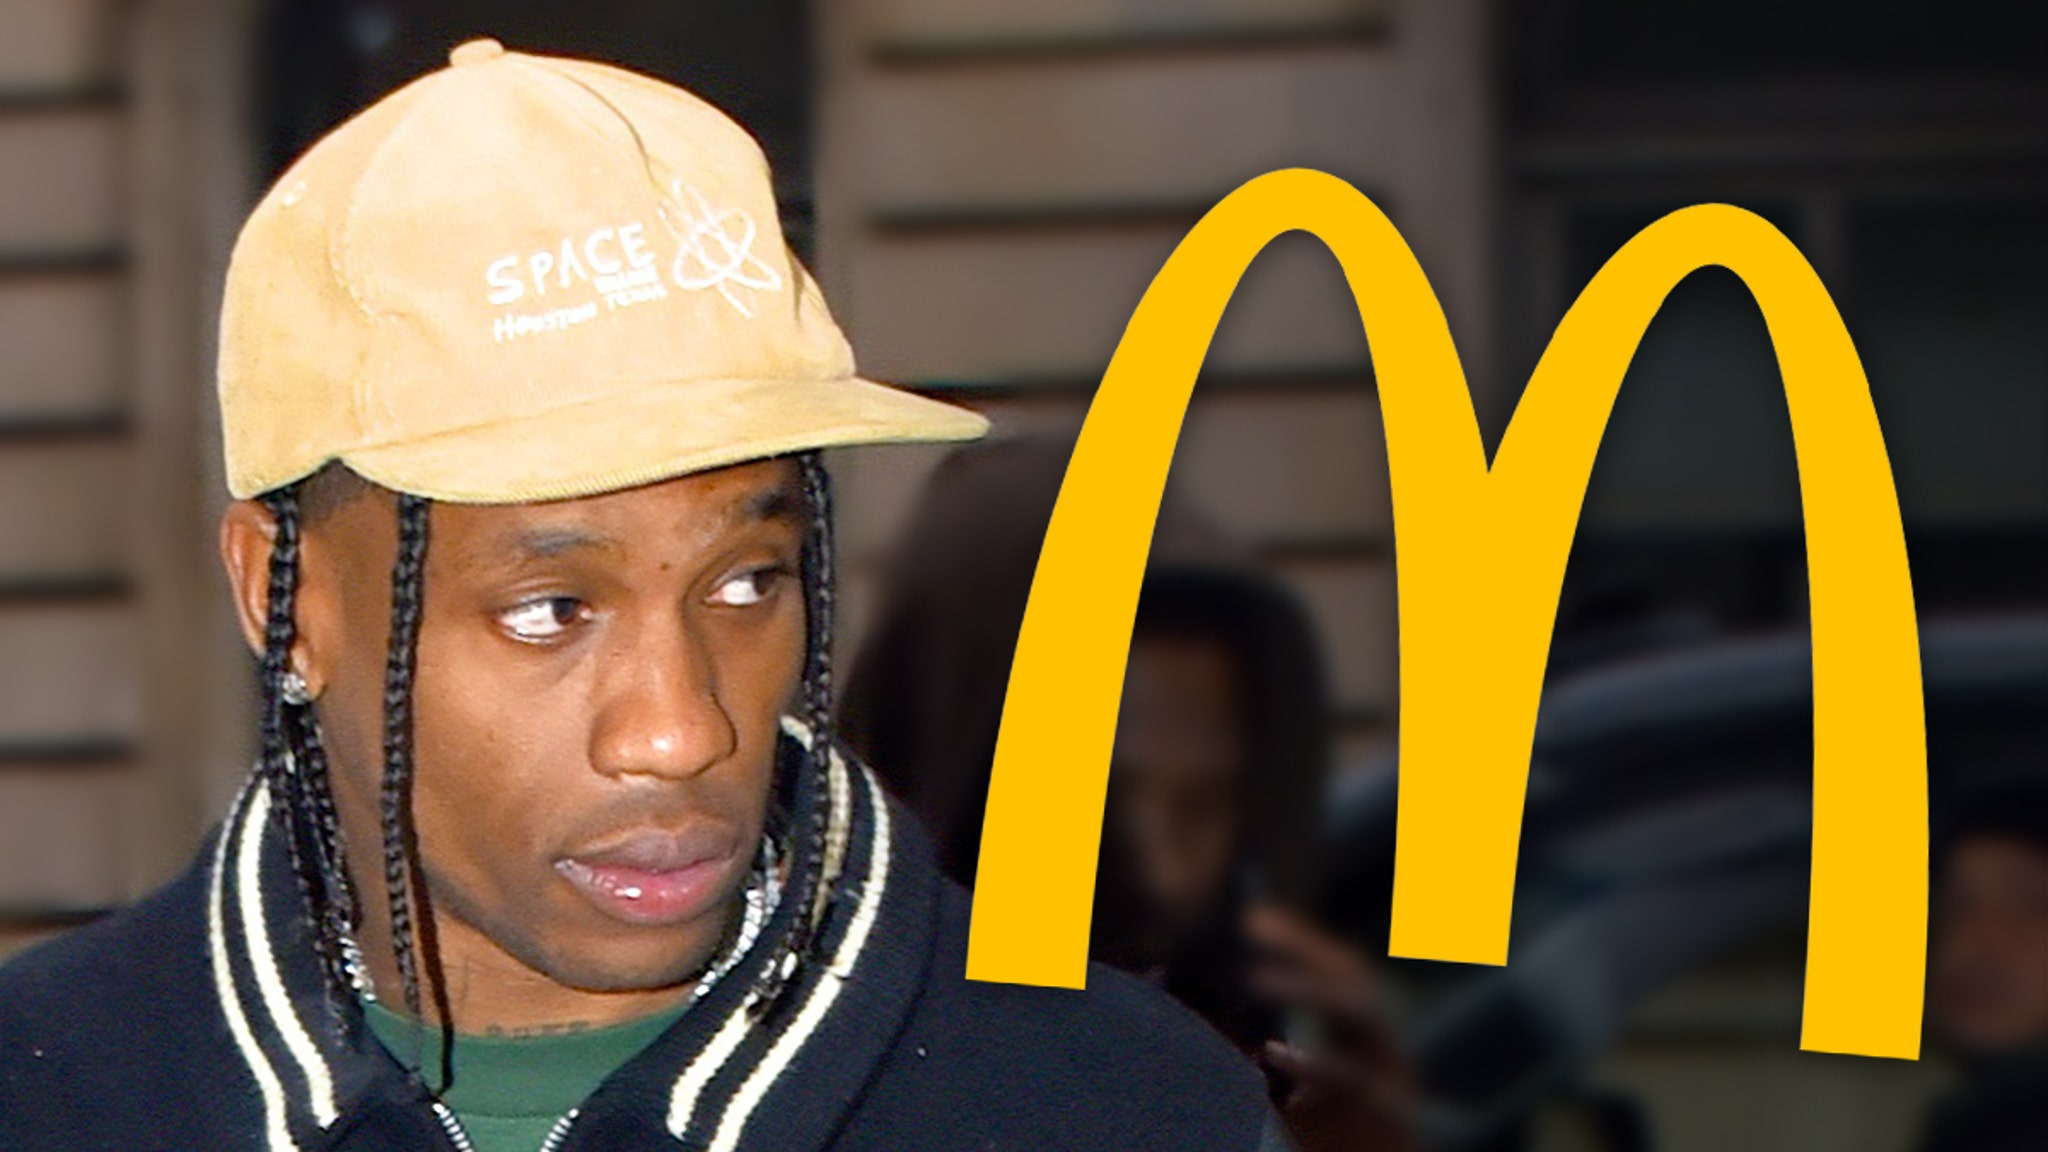 Travis Scott Fined by City of Downey for McDonald's Fan Event